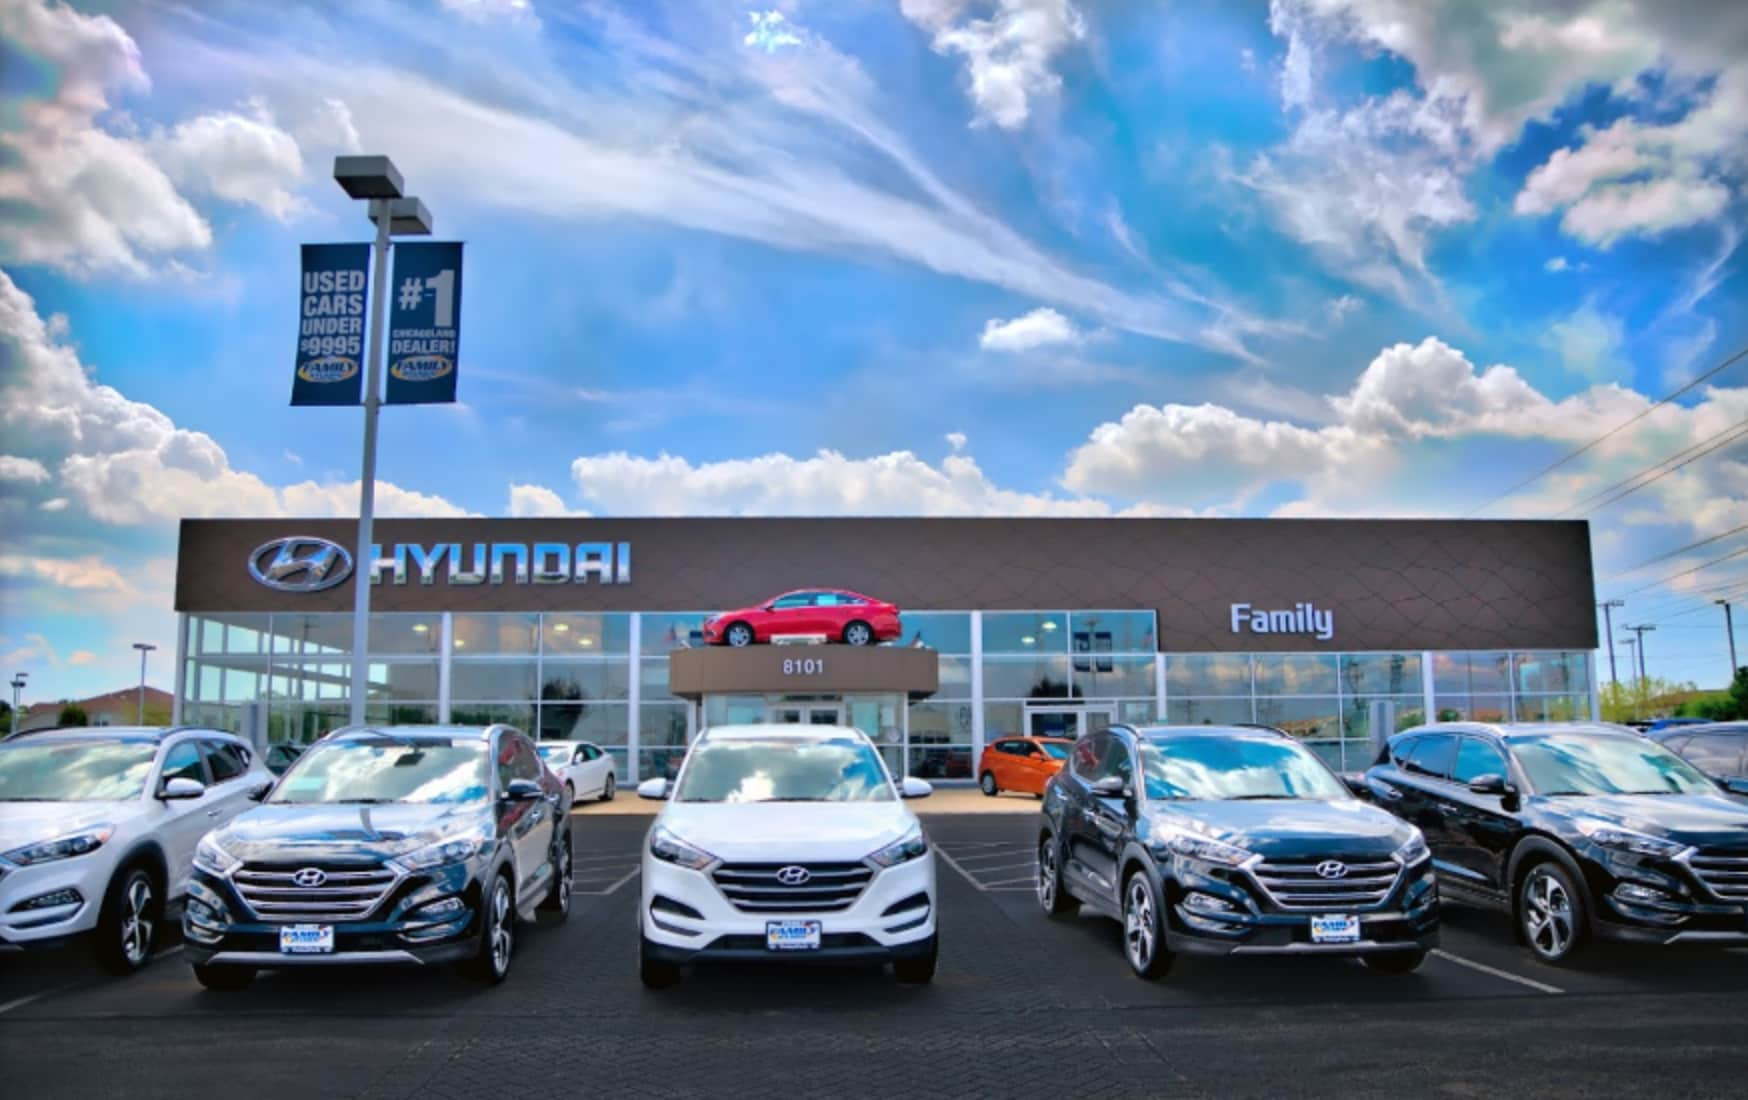 Family Hyundai | New Hyundai dealership in Tinley Park, IL 60477